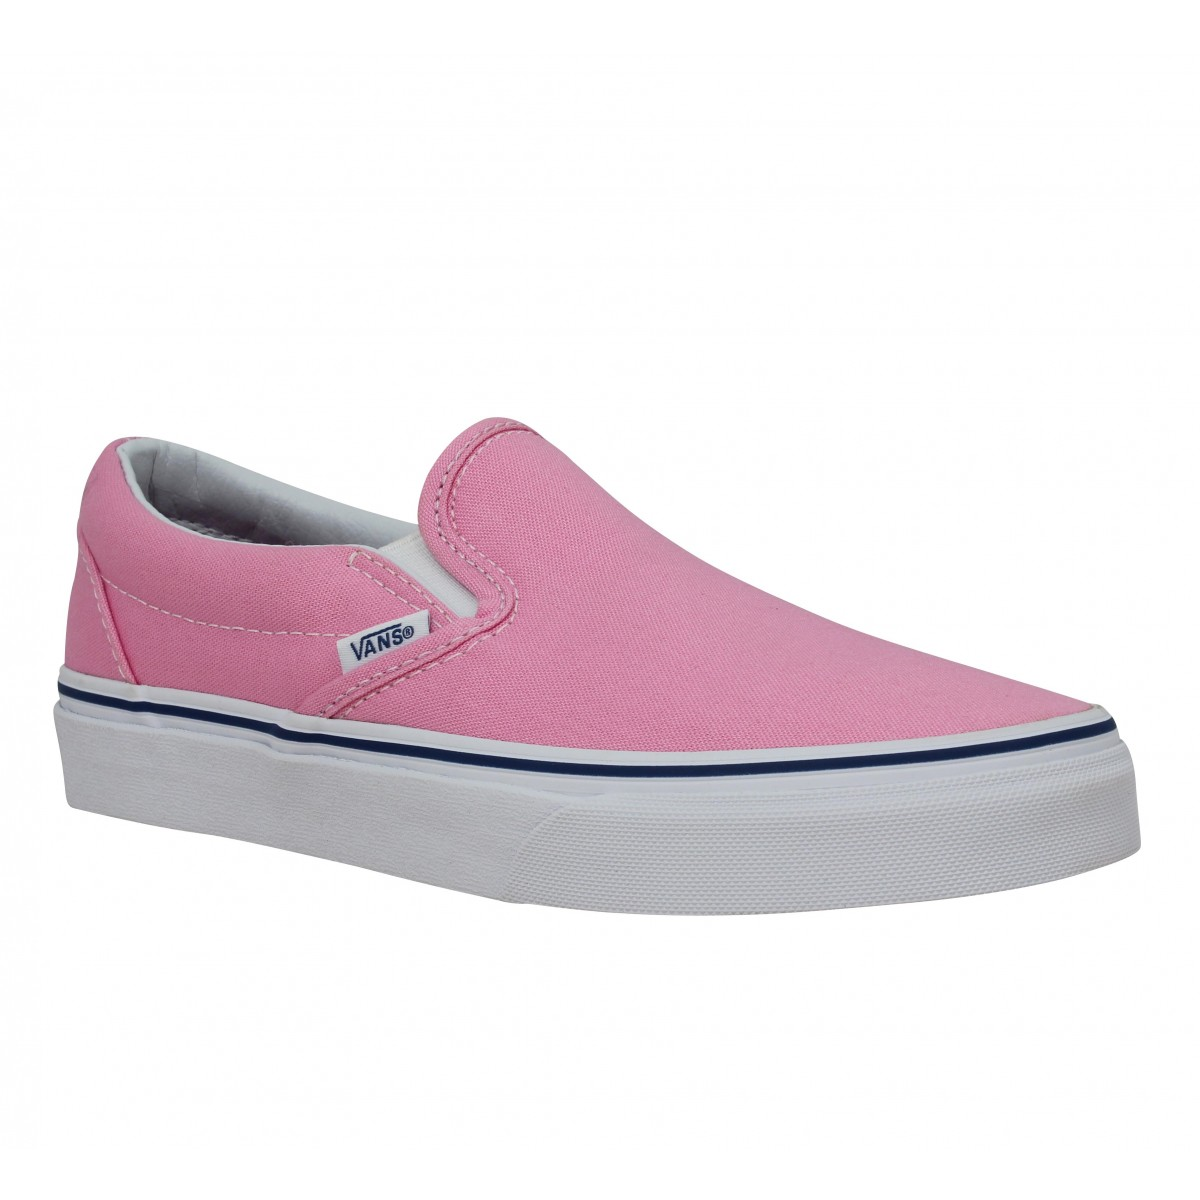 Baskets VANS Classic Slip On toile Femme Pink